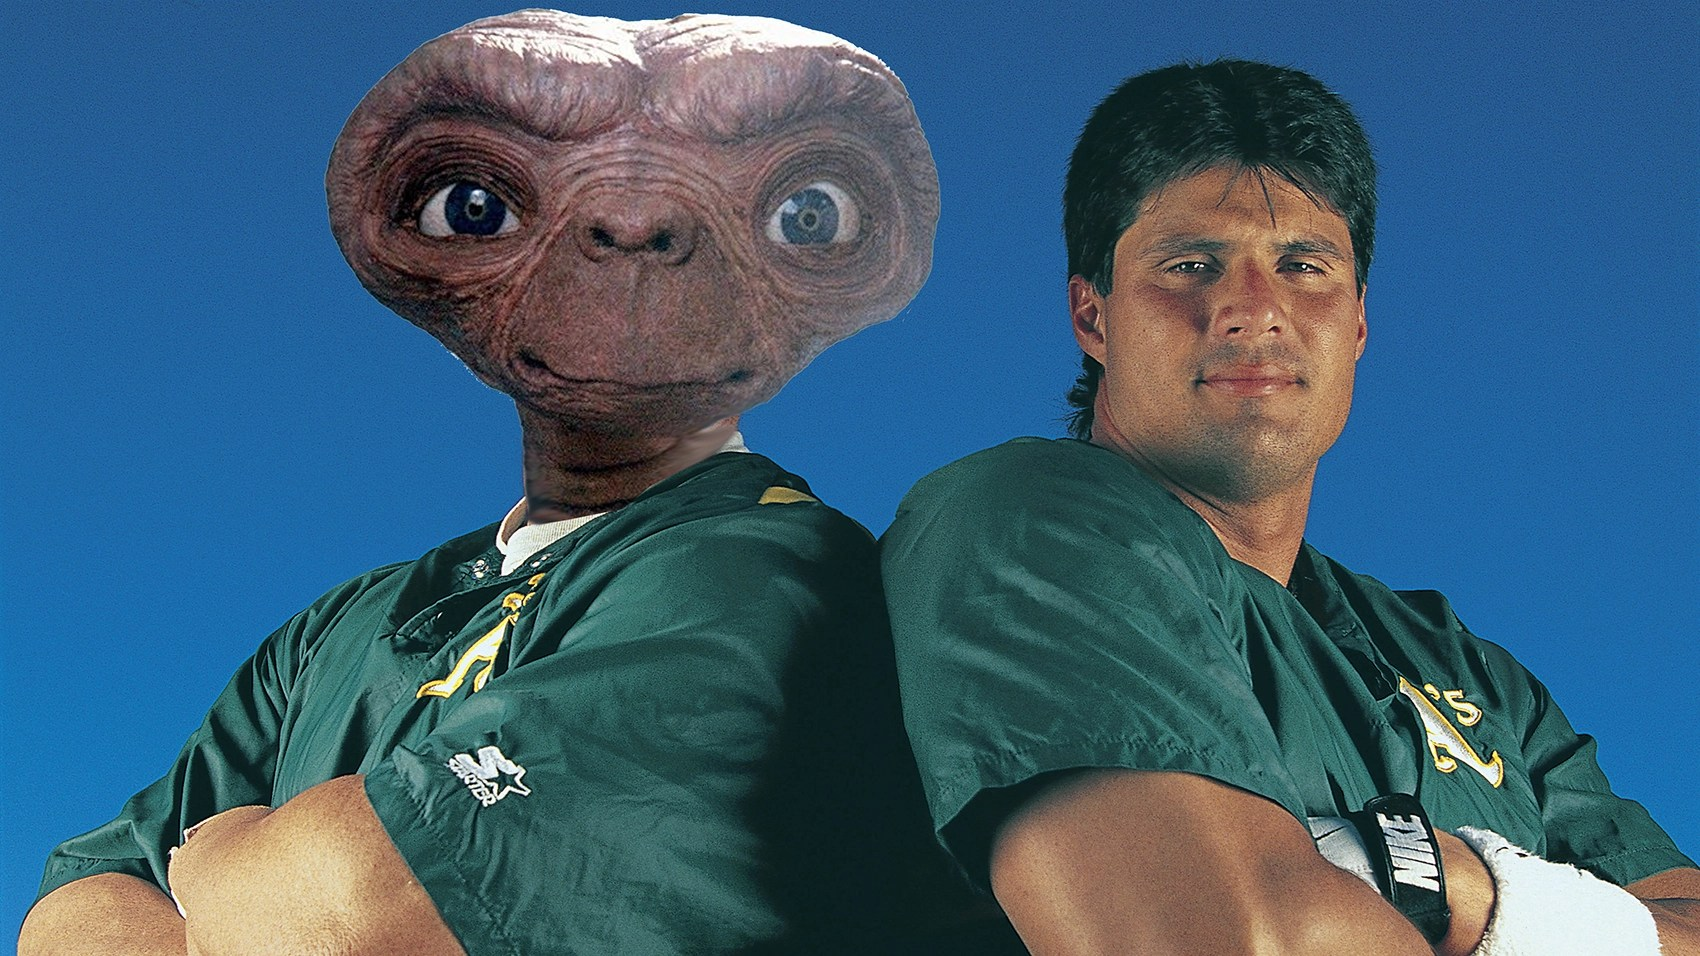 For 5000 You Can Spend The Weekend With Jose Canseco Searching For Aliens And Bigfoot  Riot Fest